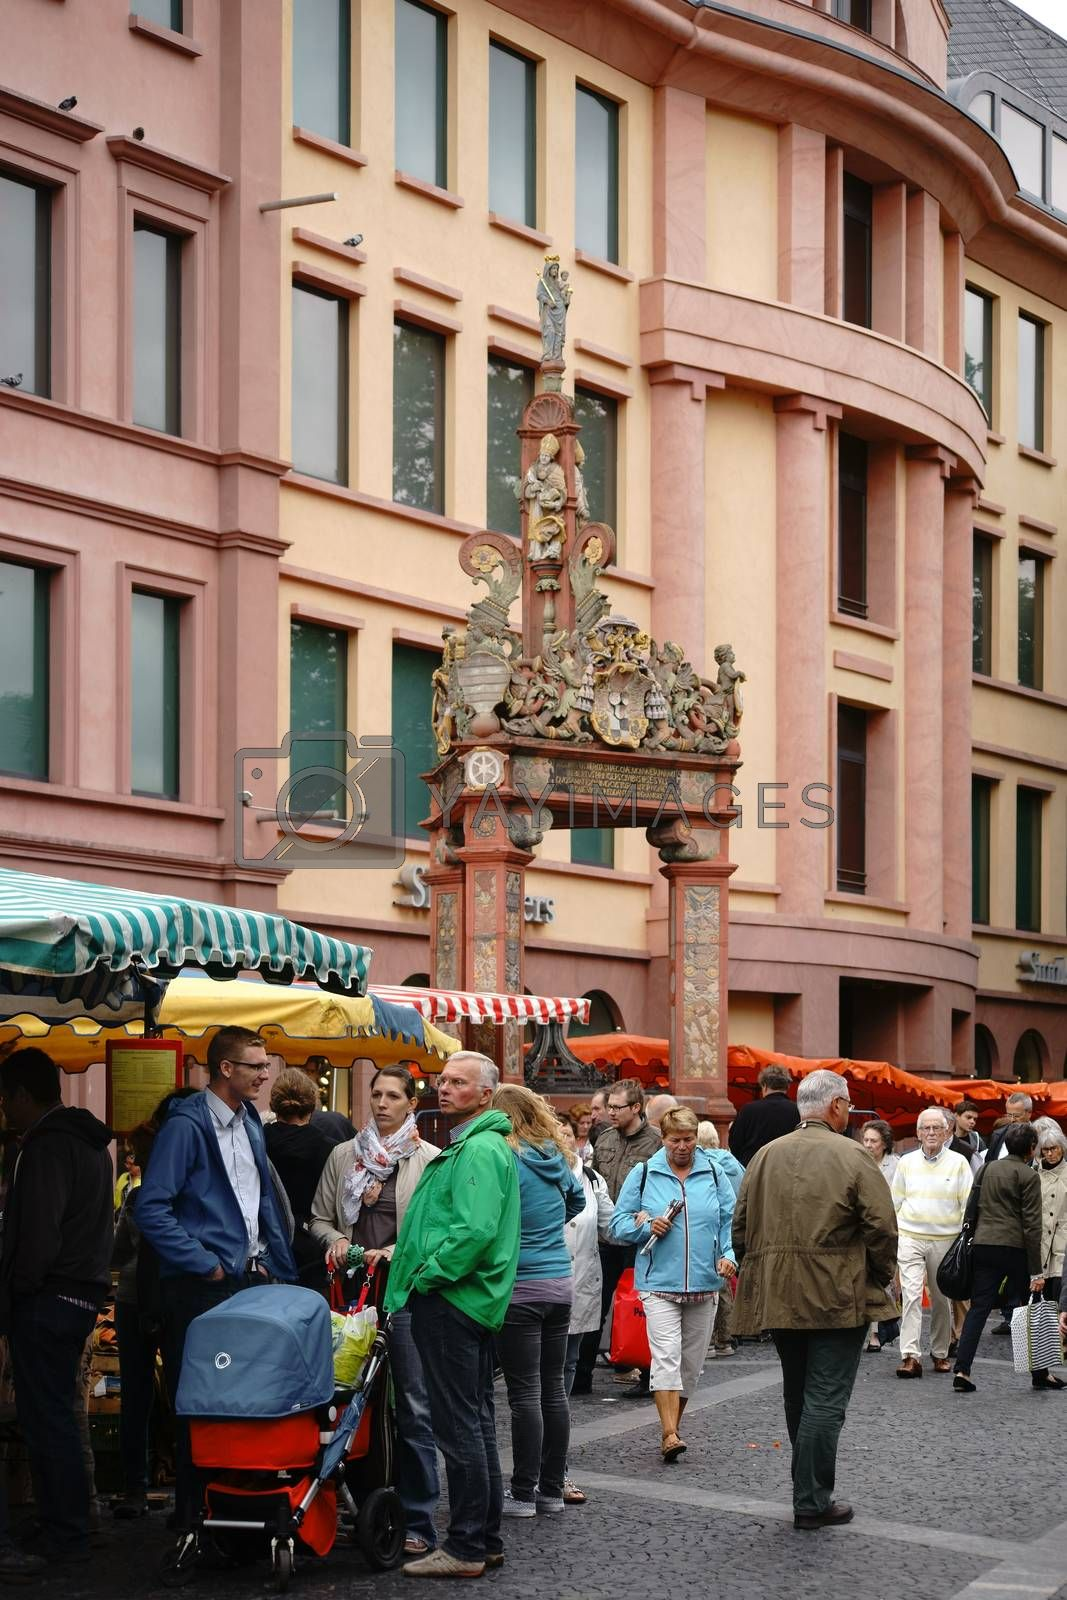 Mainz, Germany - September 04, 2015: The stalls of the weekly market in Mainz with visitors on the marketplace at the market fountain on September 04, 2015 in Mainz.